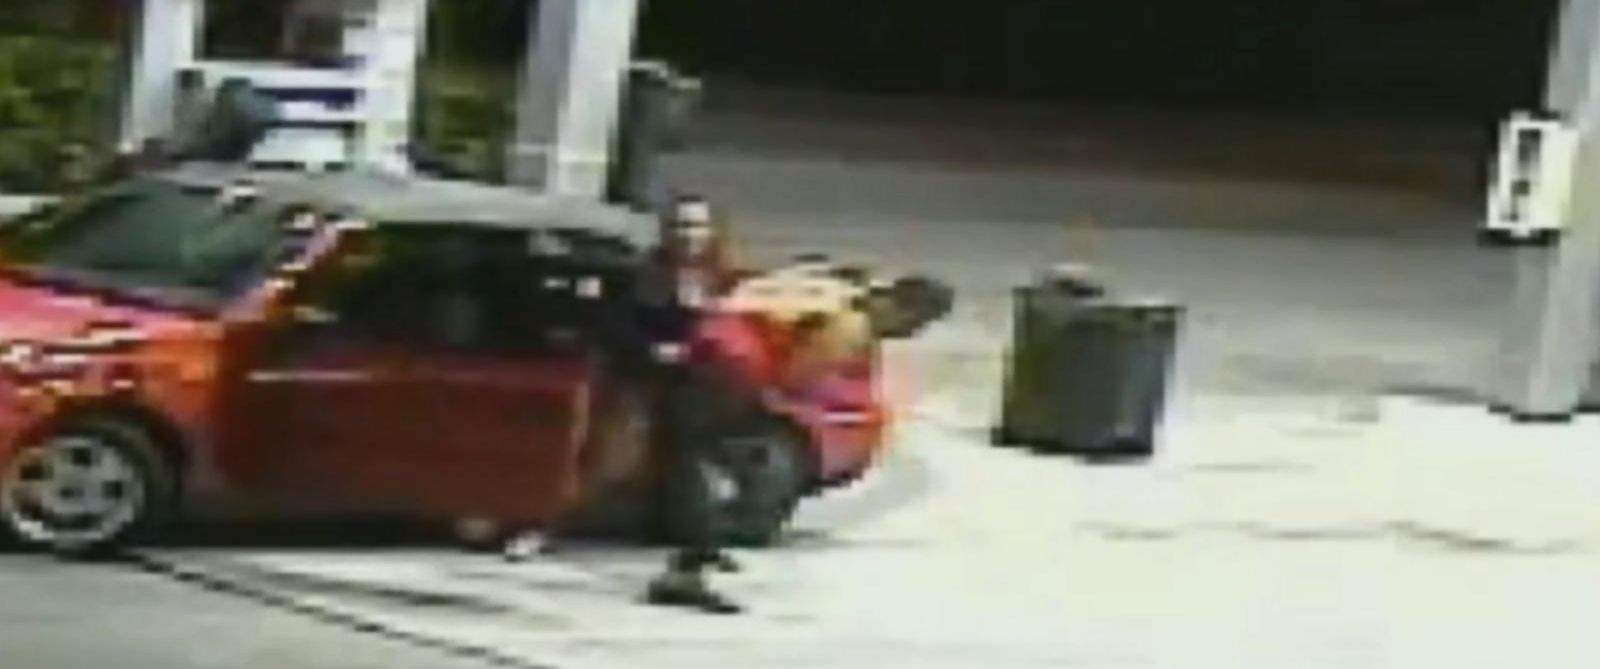 PHOTO: Surveillance footage shows a mother fighting off carjackers at a gas station in Hialeah, Florida.